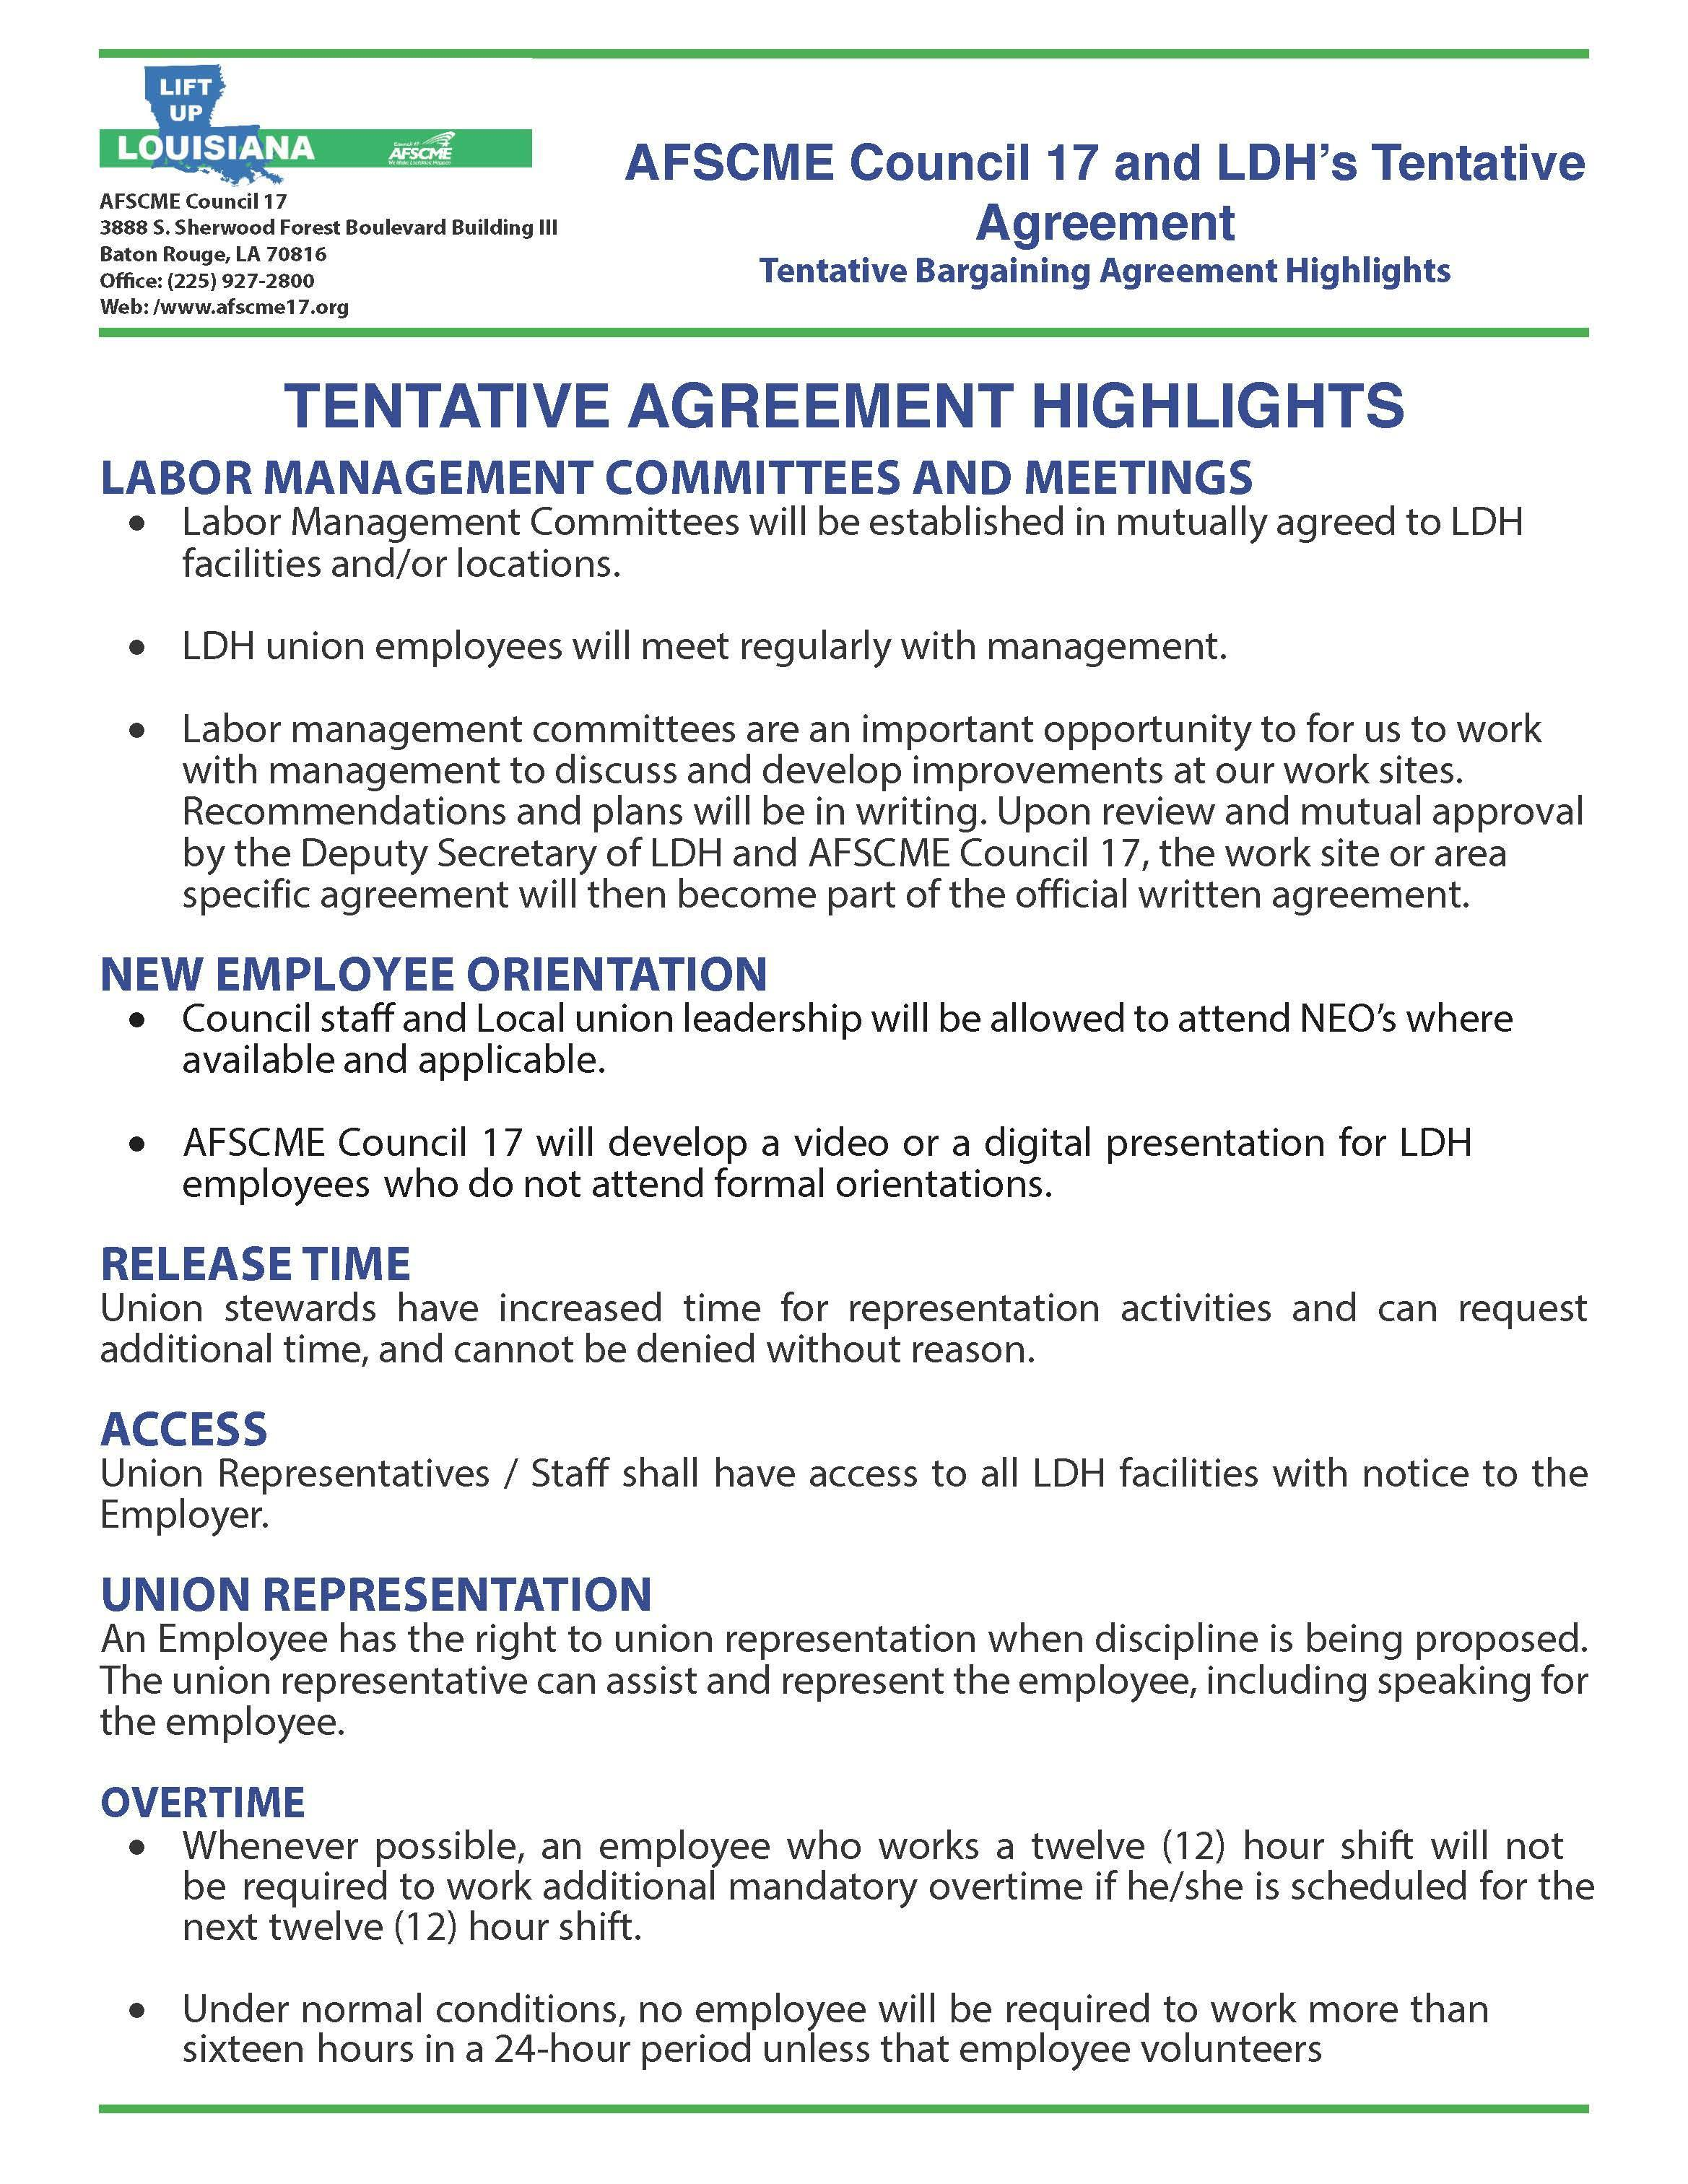 Bargaining Agreement Highlights For Louisiana Department Of Health